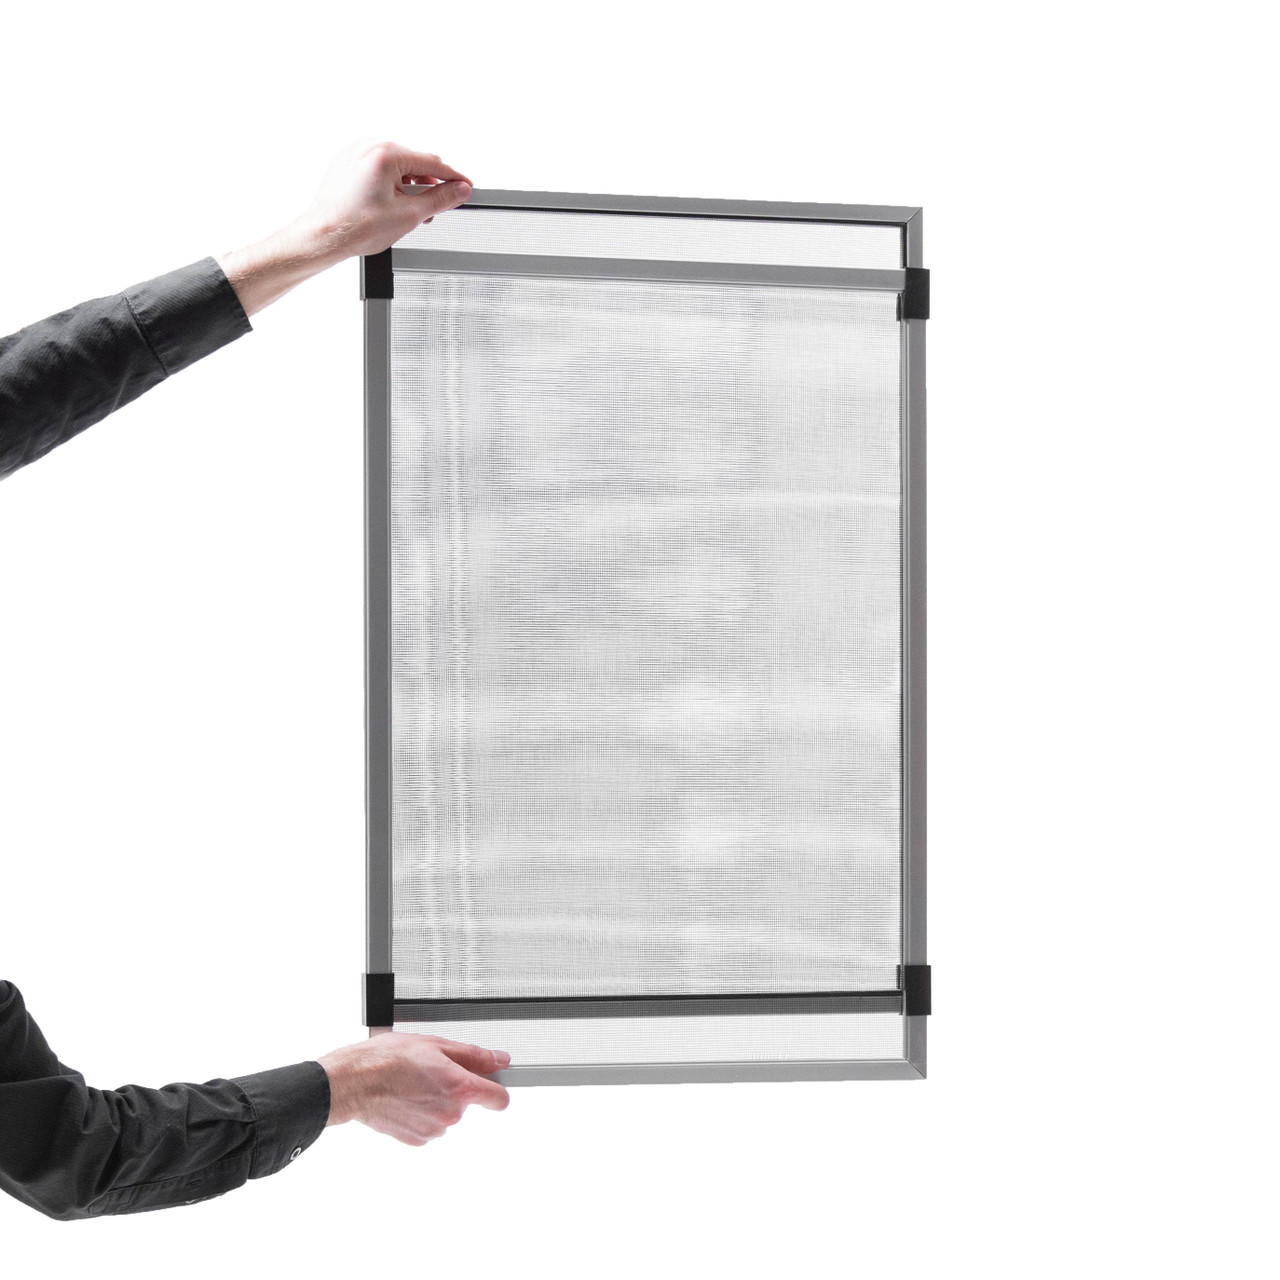 BMT AllergyGuard™ Adjustable Screen